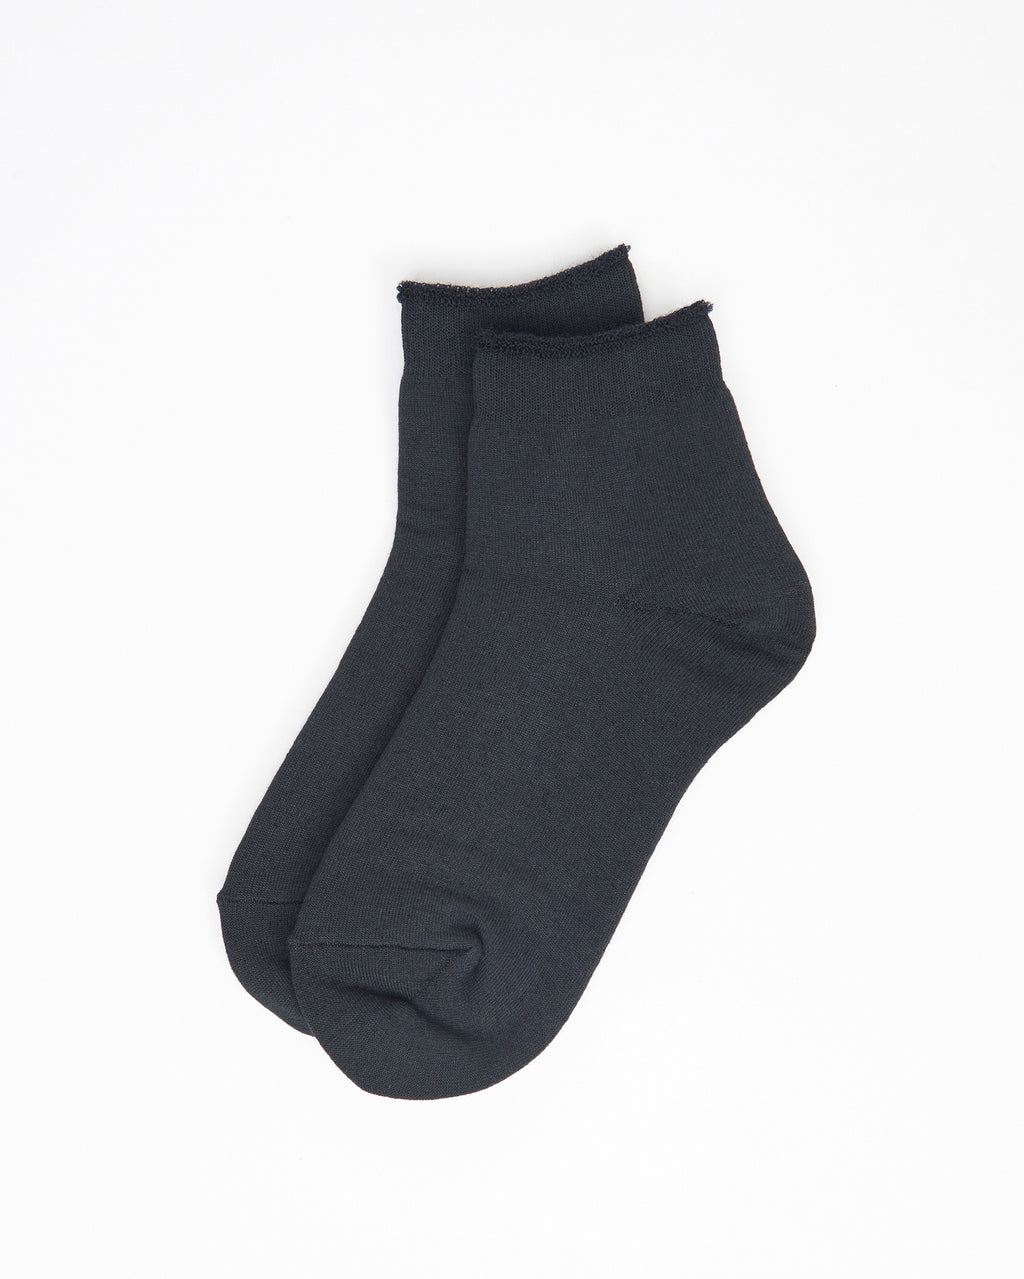 City Socks Short – Black